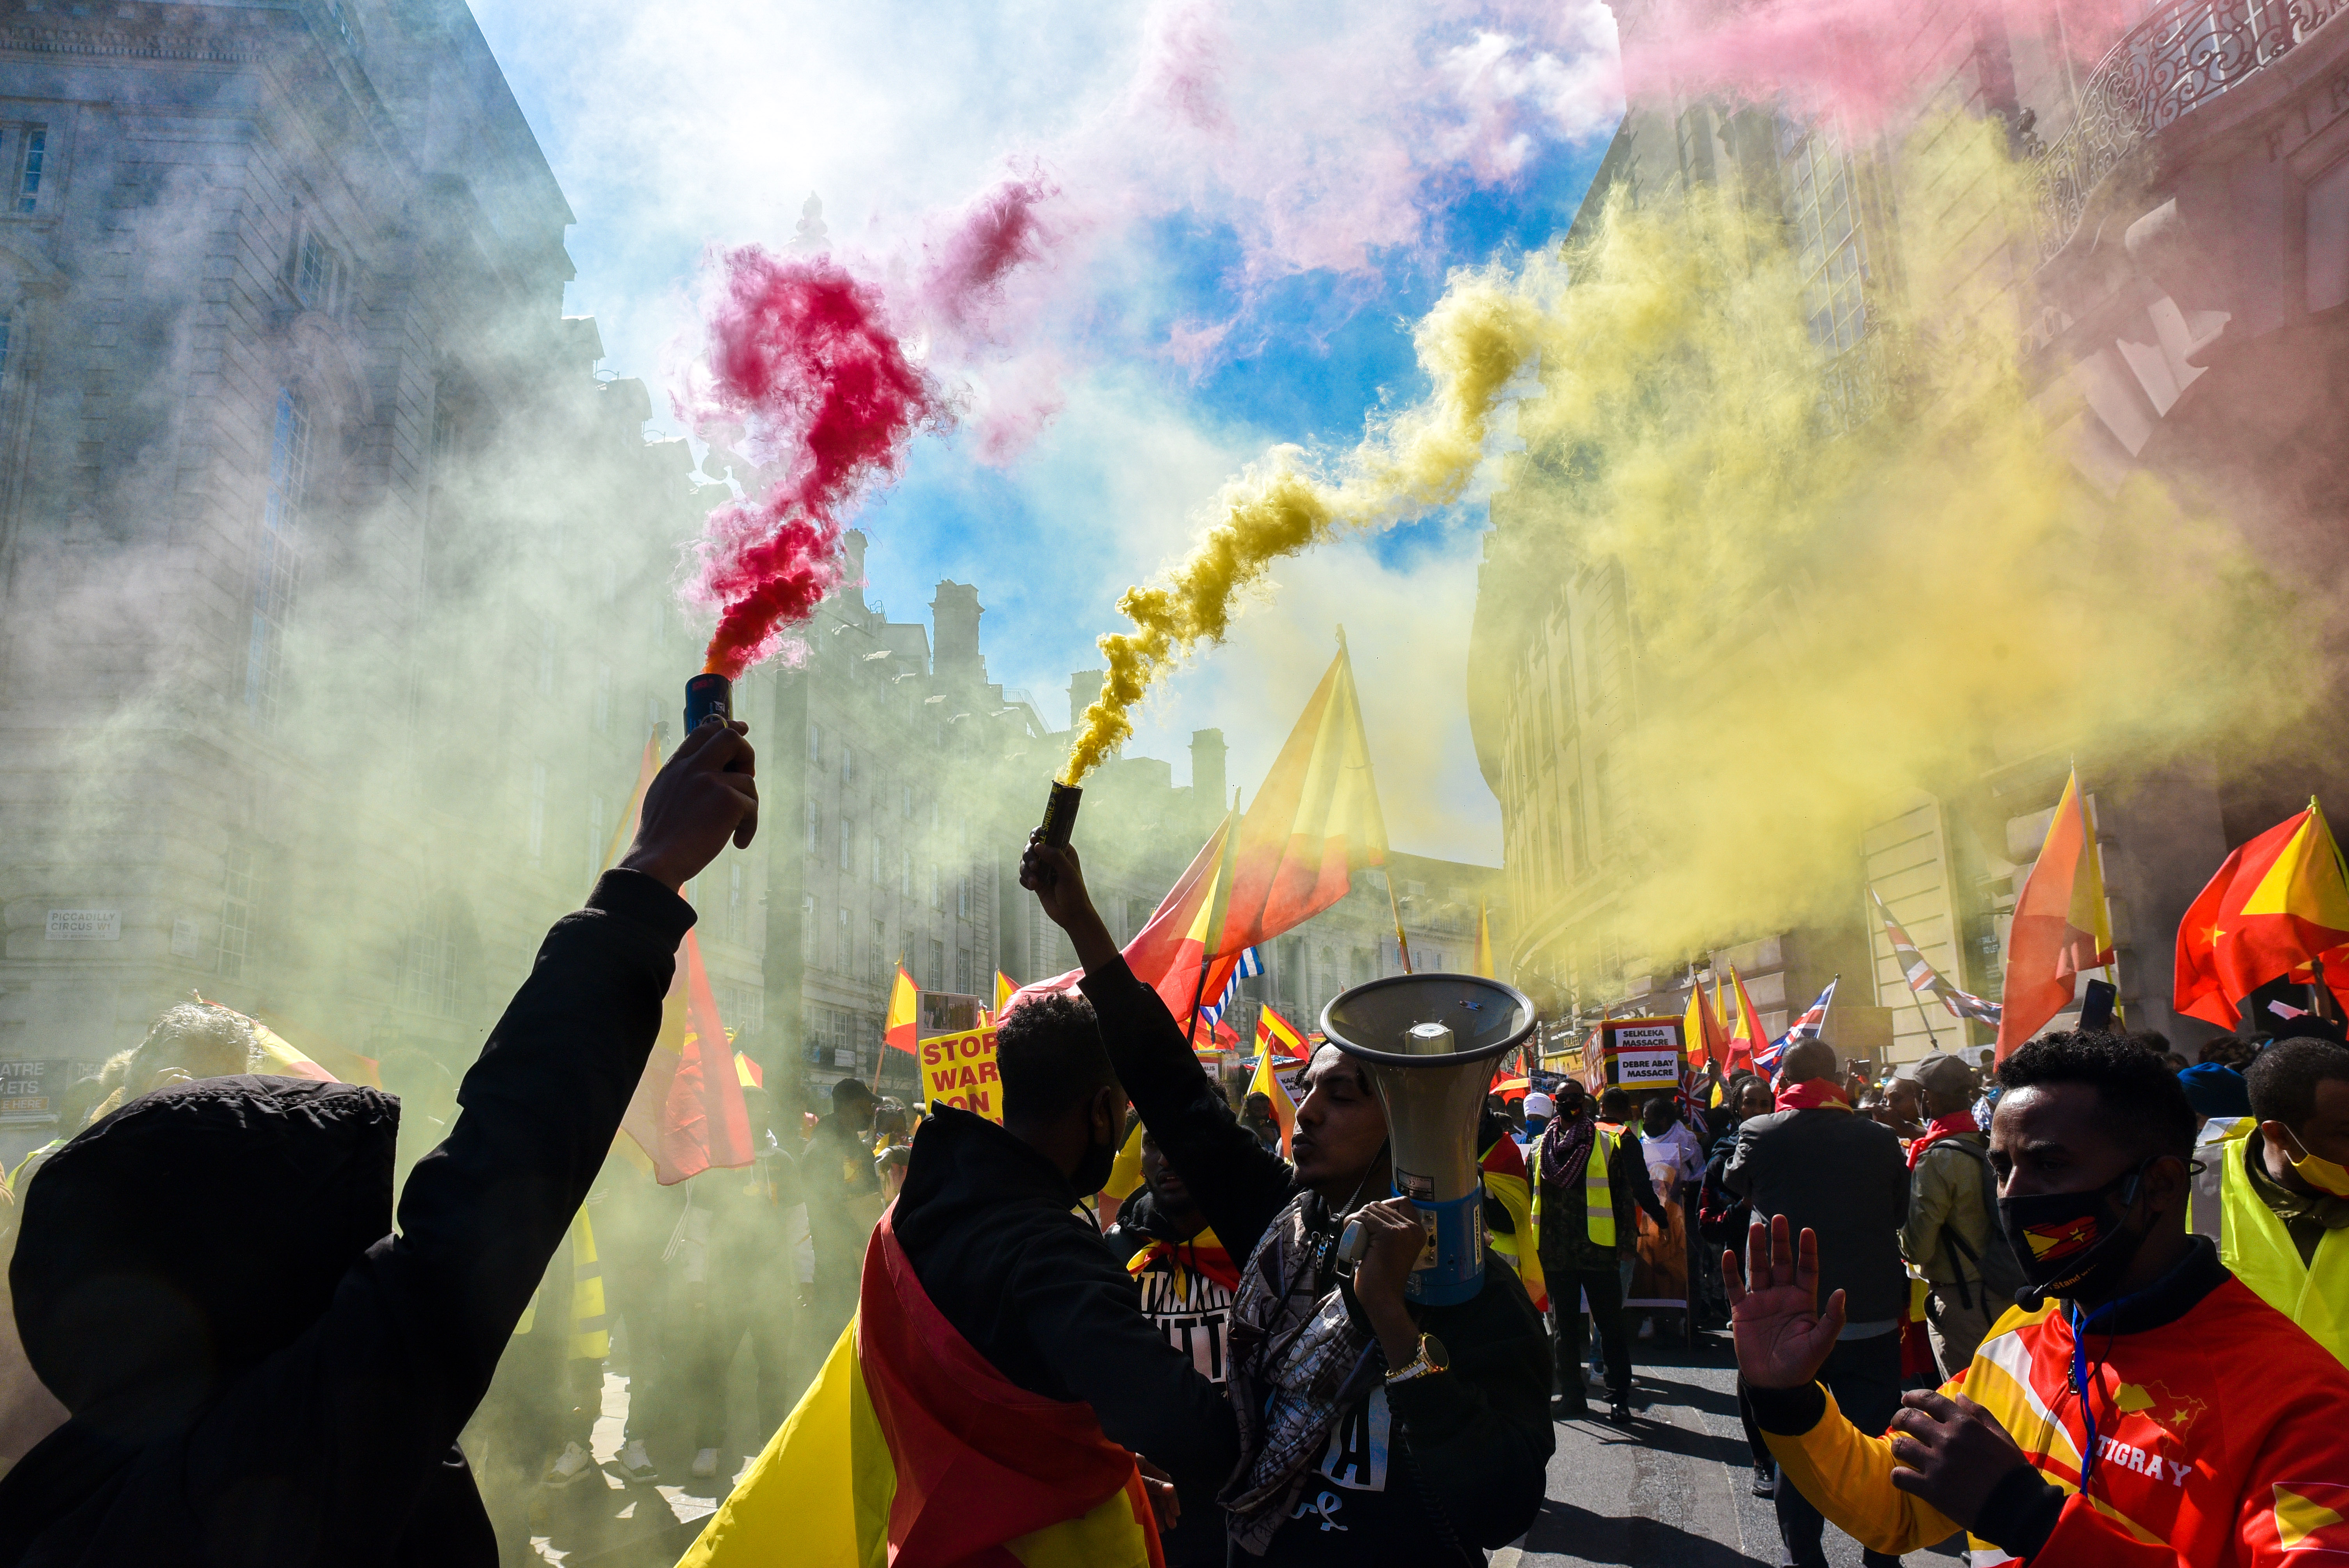 LONDON, UNITED KINGDOM - APRIL 25, 2021 - People protest and march for Tigray in central London. (Photo credit should read Matthew Chattle/Barcroft Media via Getty Images)